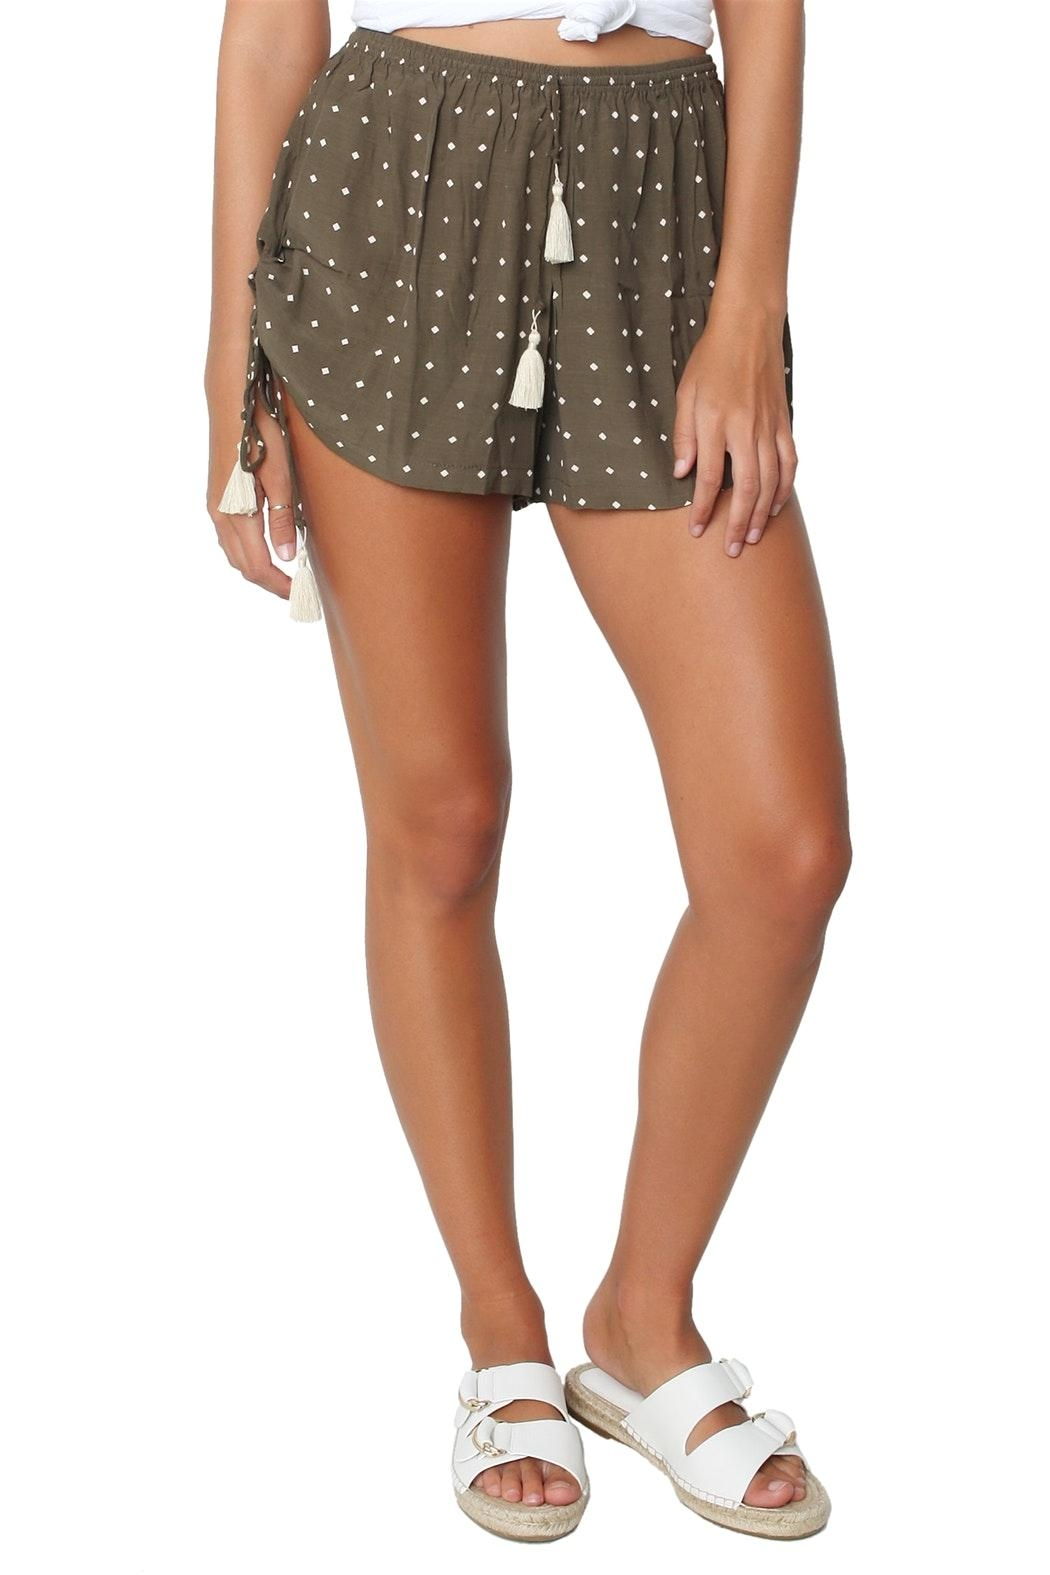 Faithfull The Brand Gypsy Shorts - Main Image